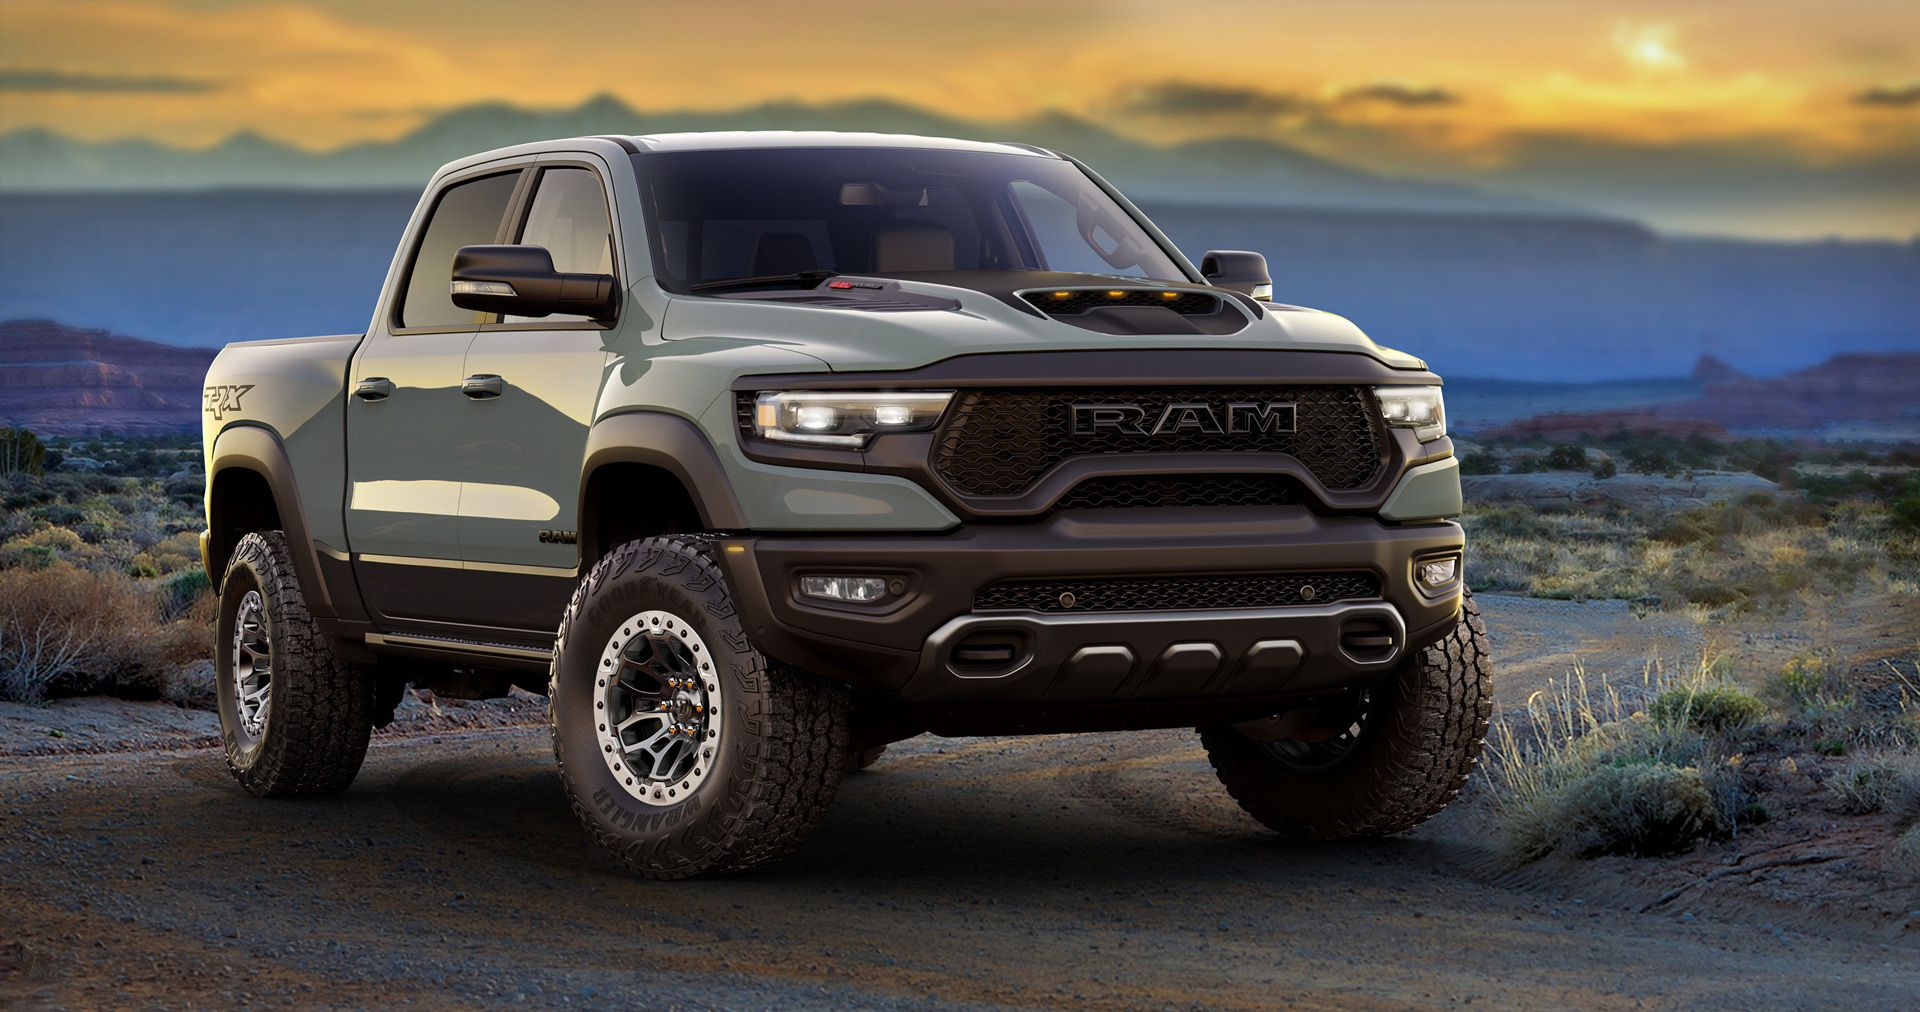 2021 Ram 1500 Trx Launch Edition Is A 92 010 Truck Limited To 702 Units In 2020 Pickup Trucks Trx Ram 1500